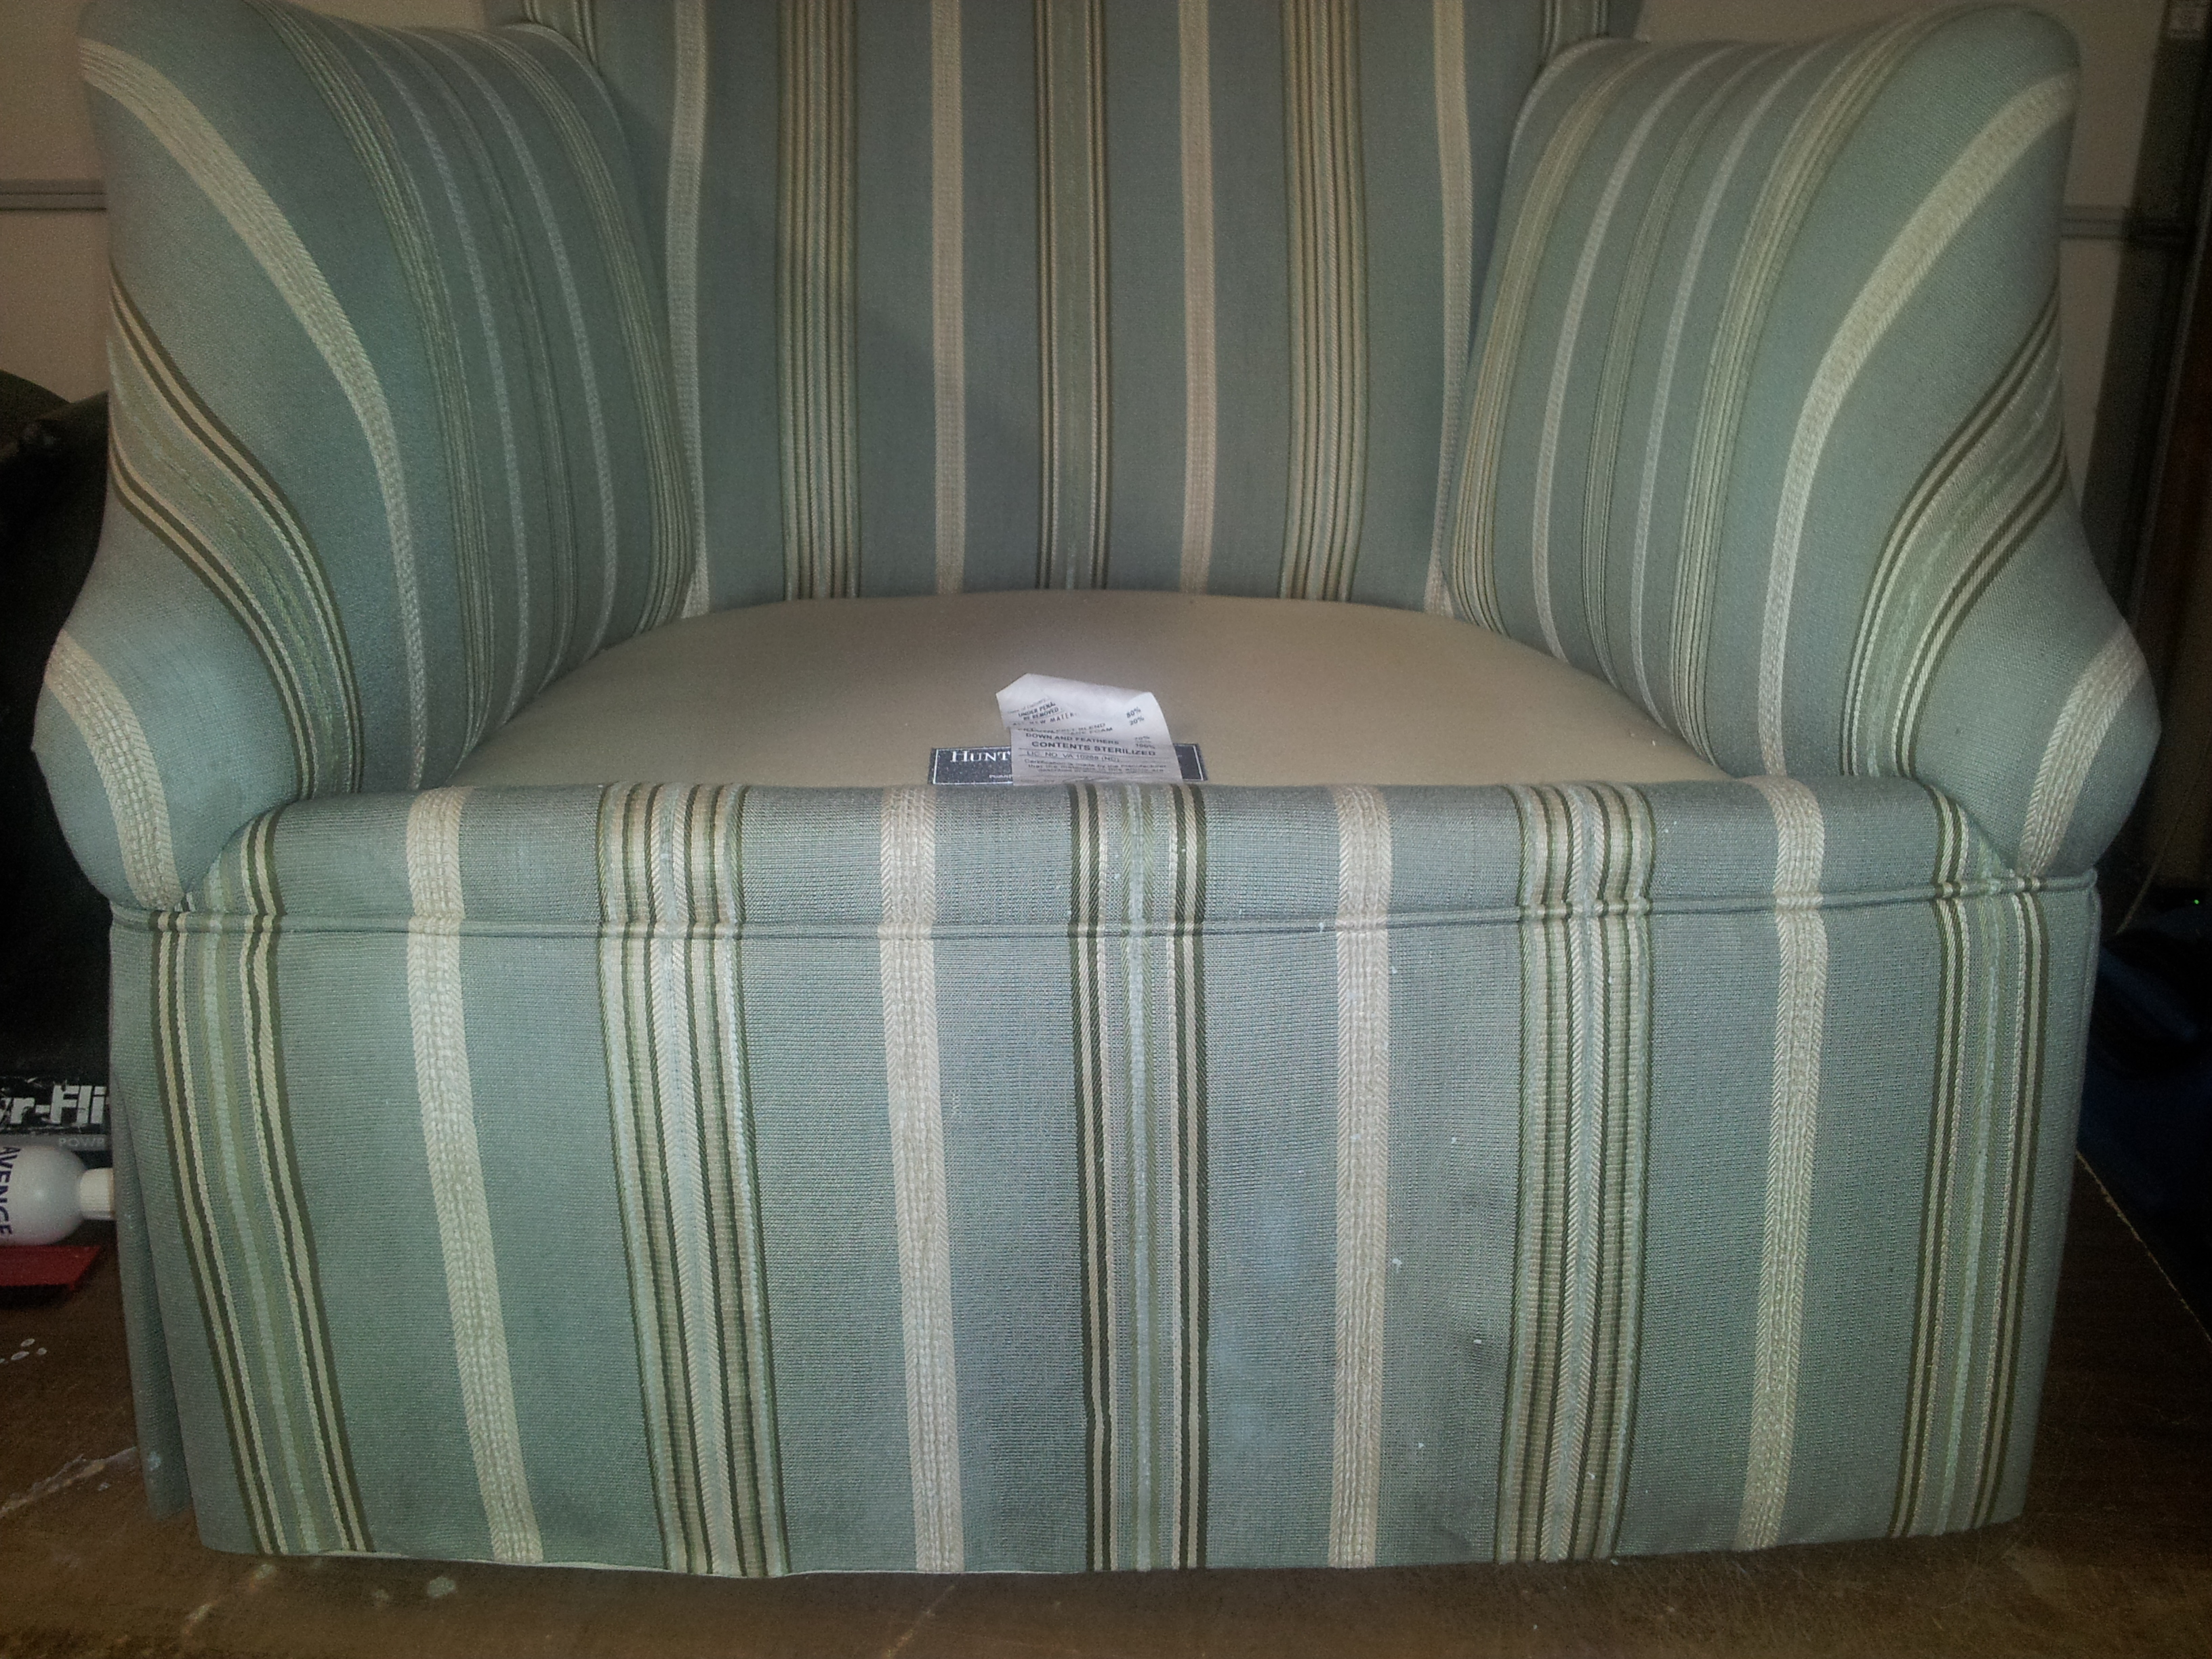 denver sofa cleaning wall art upholstery the clean team carpet so don t trust your expensive upholstered furniture to amateurs call professionals at